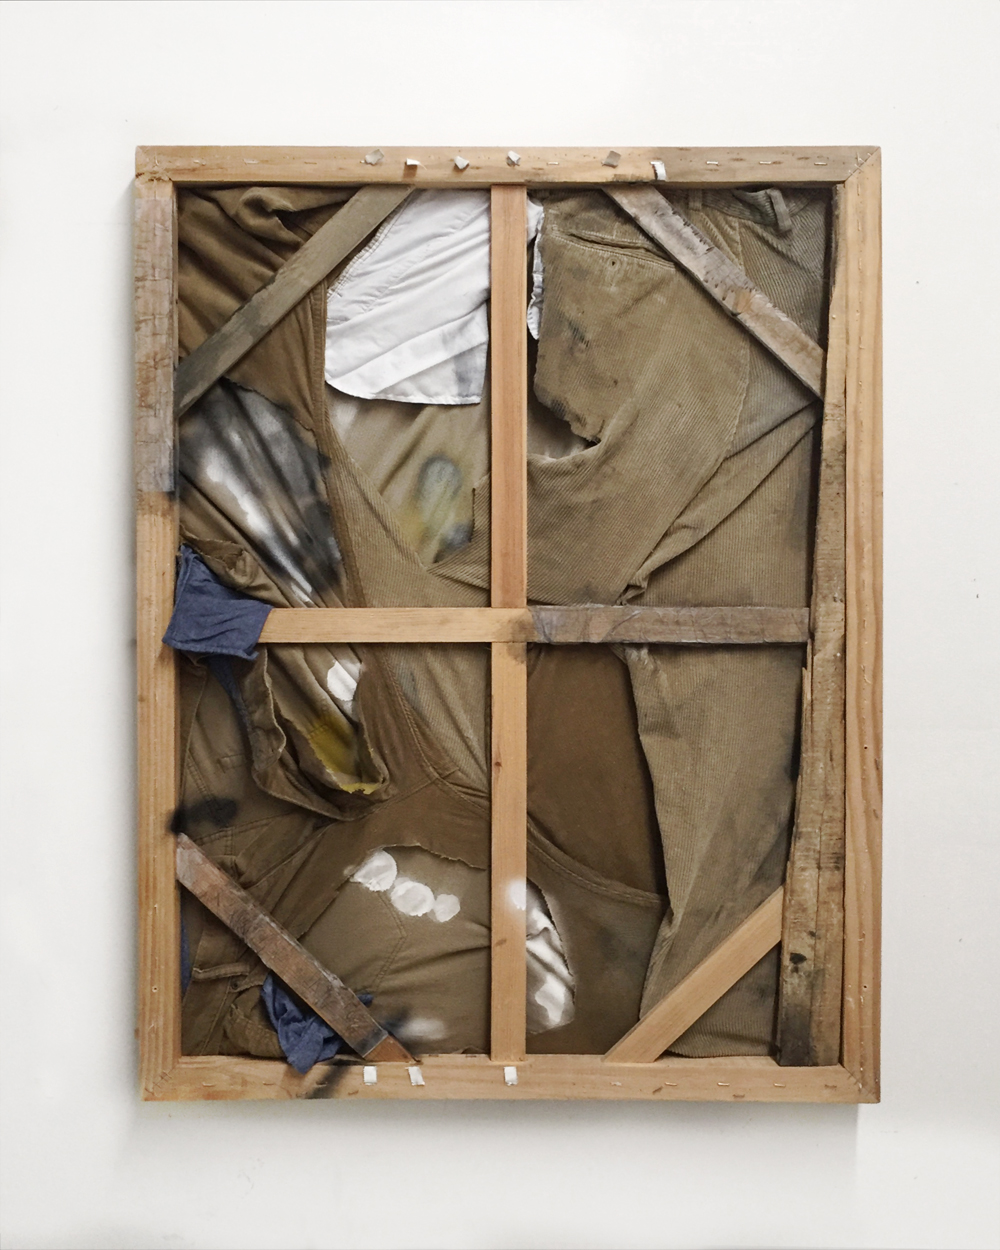 Kuebiko (Skin against linen, the purr of straight-leg trousers, and curious stains),  2018   Oil, spray paint, house paint, corduroy trousers, paper, wood   30in x 40in